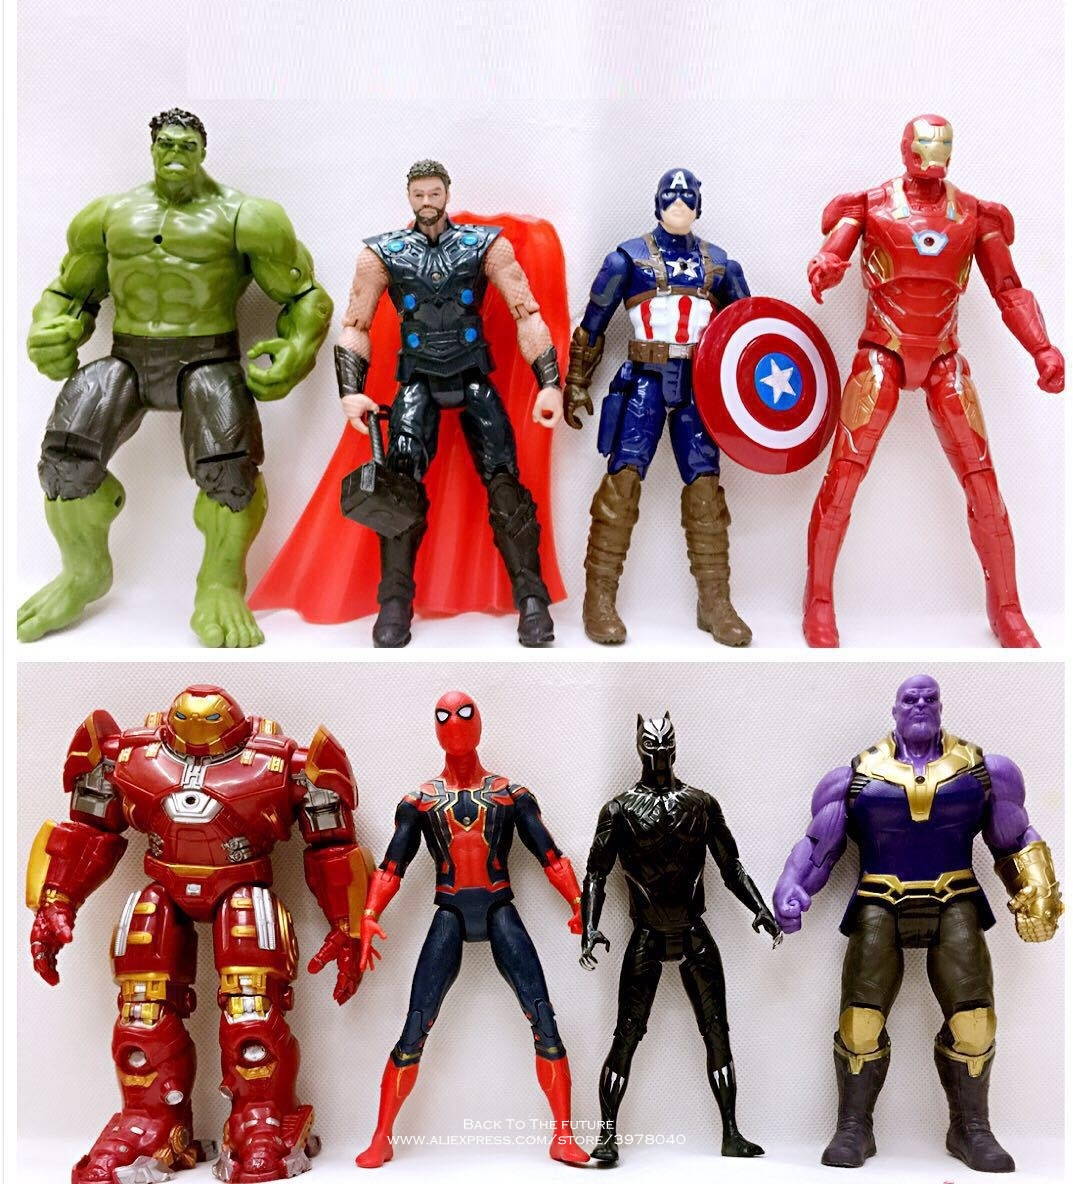 Disney Marvel Avengers 8 pcs/set Super Heroes Thor Hulk Buster Action Figure Anime Decoration Collection Figurine Toy model new marvel exclusive ironman hulk loki nick fury action figure 8 pack the avengers 3 75 collection